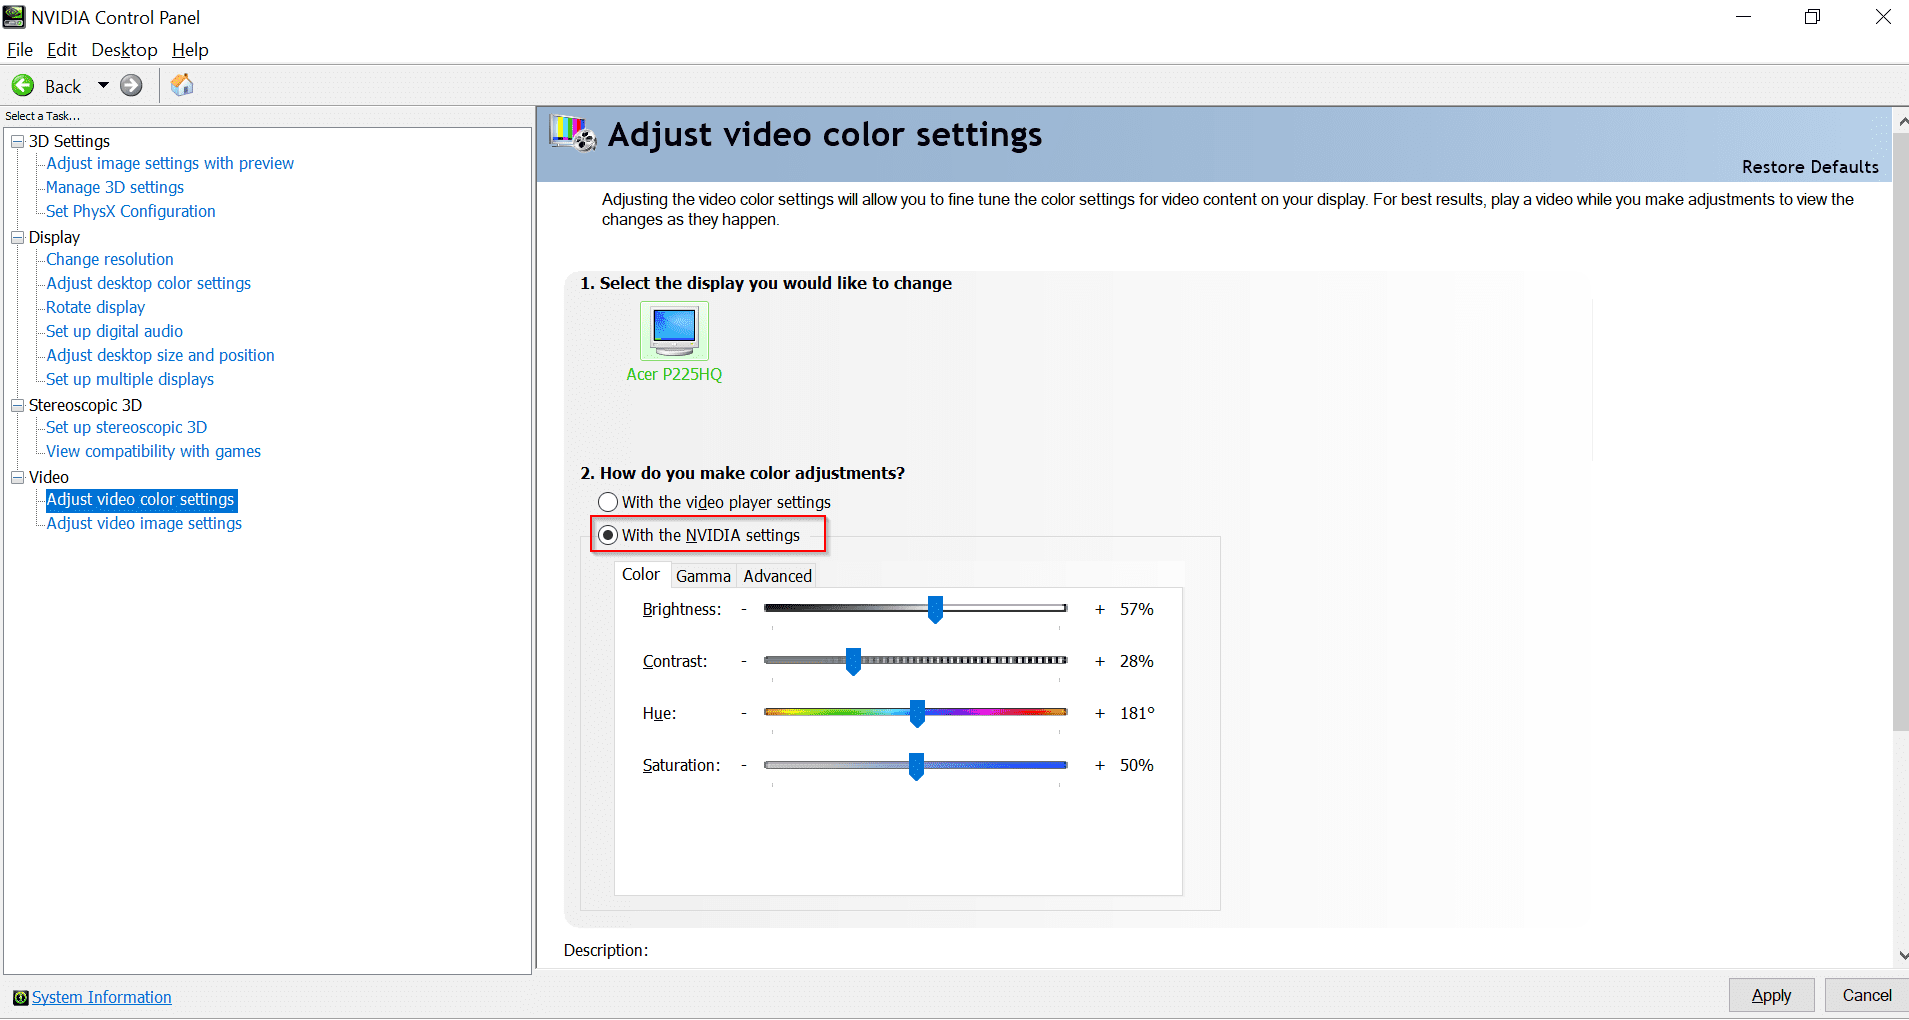 How to Fix NVidia Color Settings Resetting in Windows 10 or